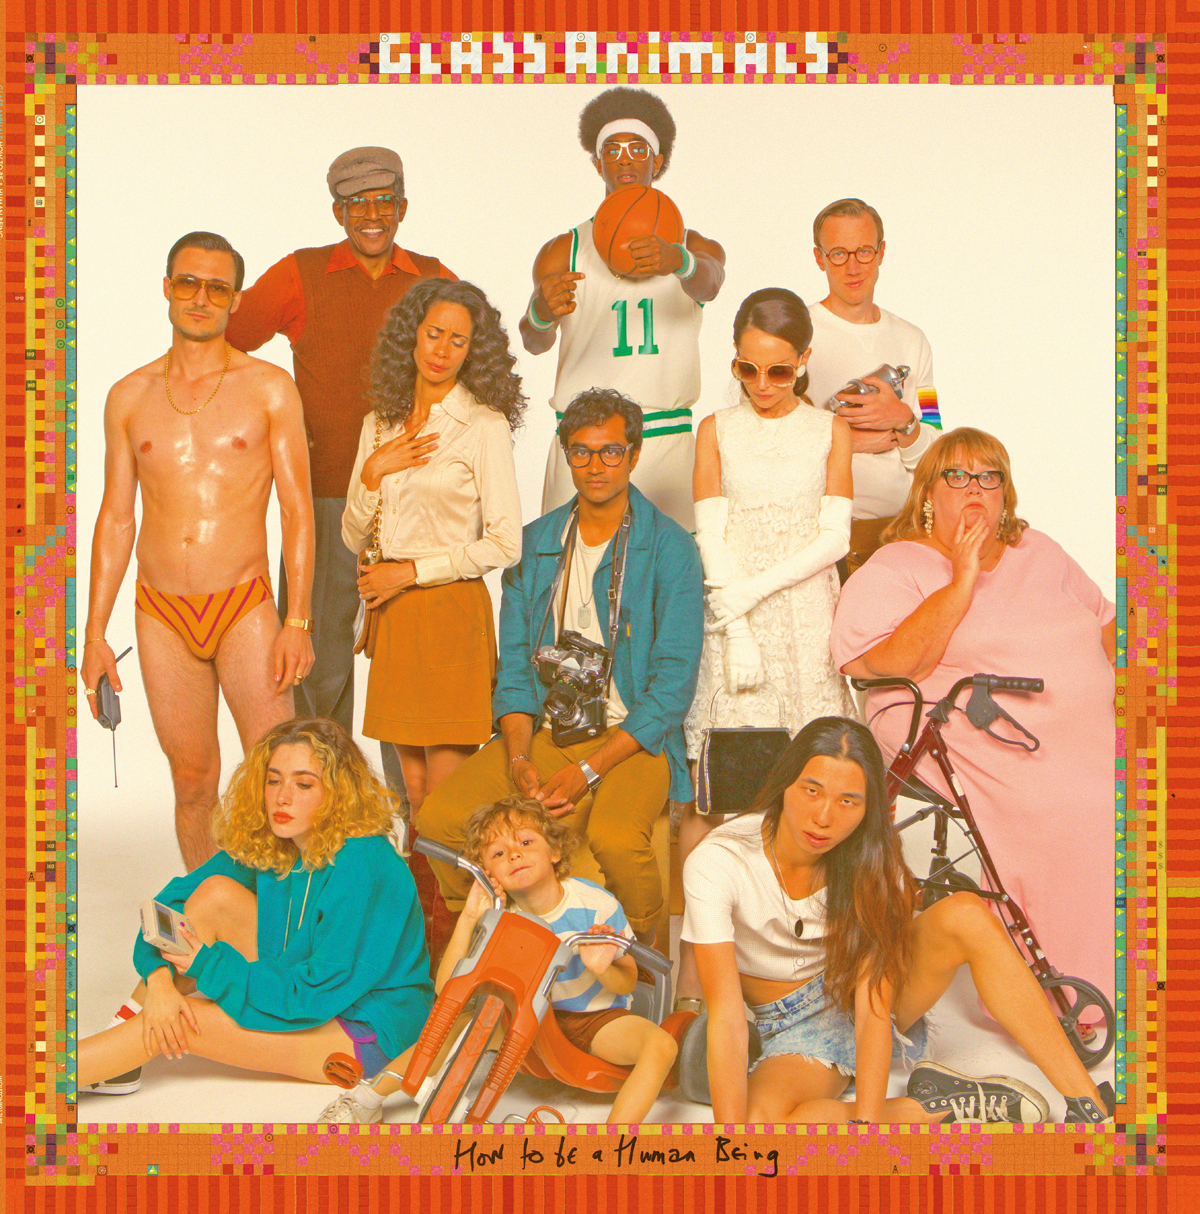 Glass Animals second album How to be a Human Being shows progress